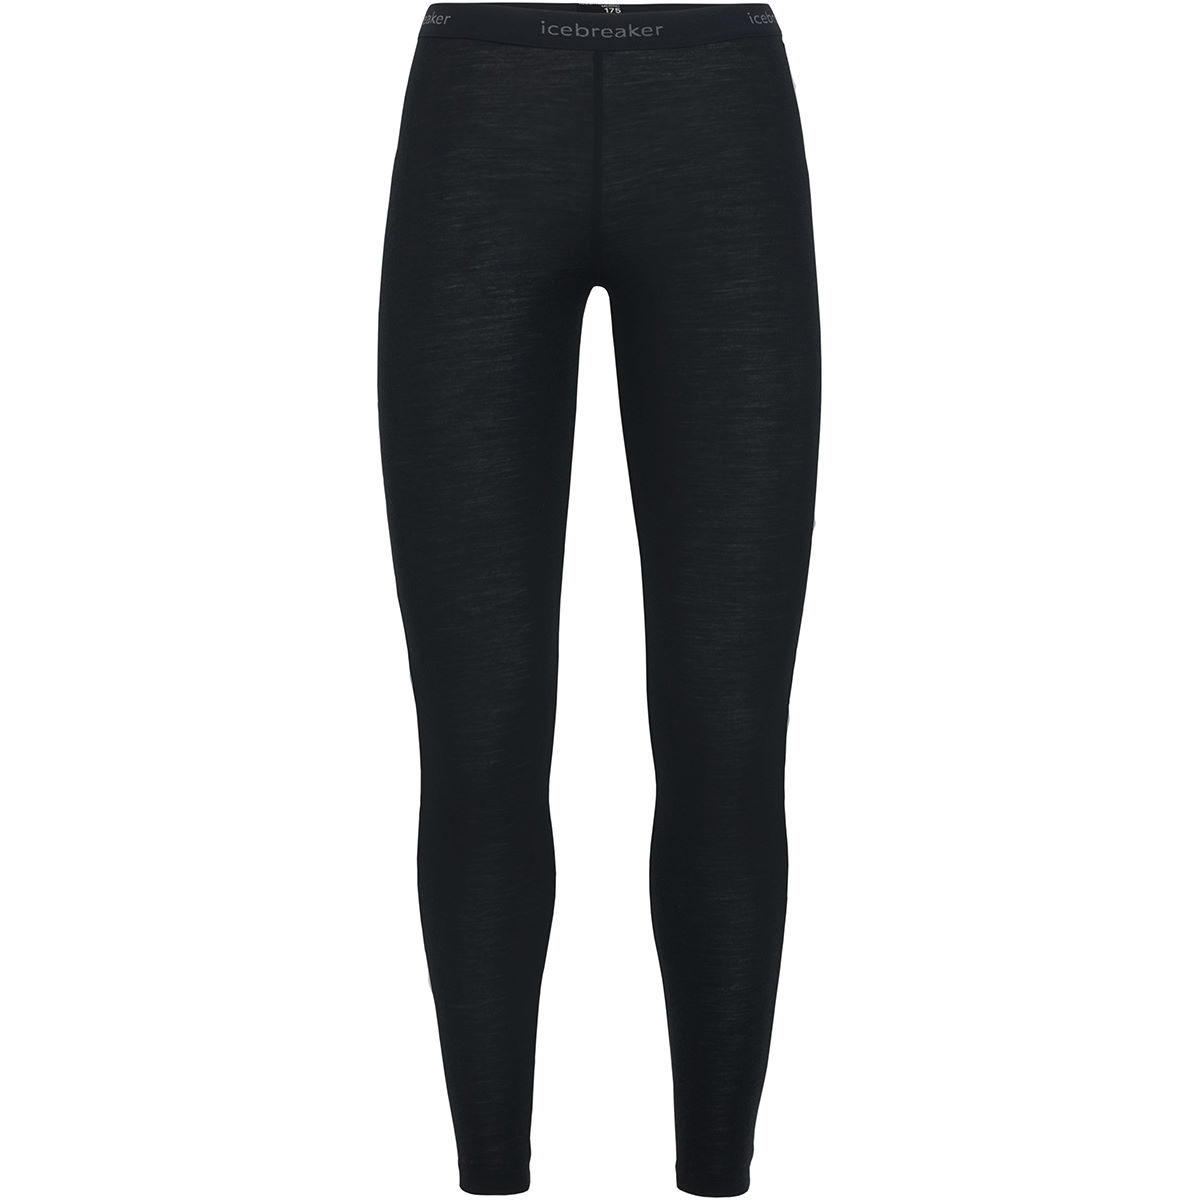 Icebreaker Women's 175 Everyday Leggings - Mallas interiores de Icebreaker